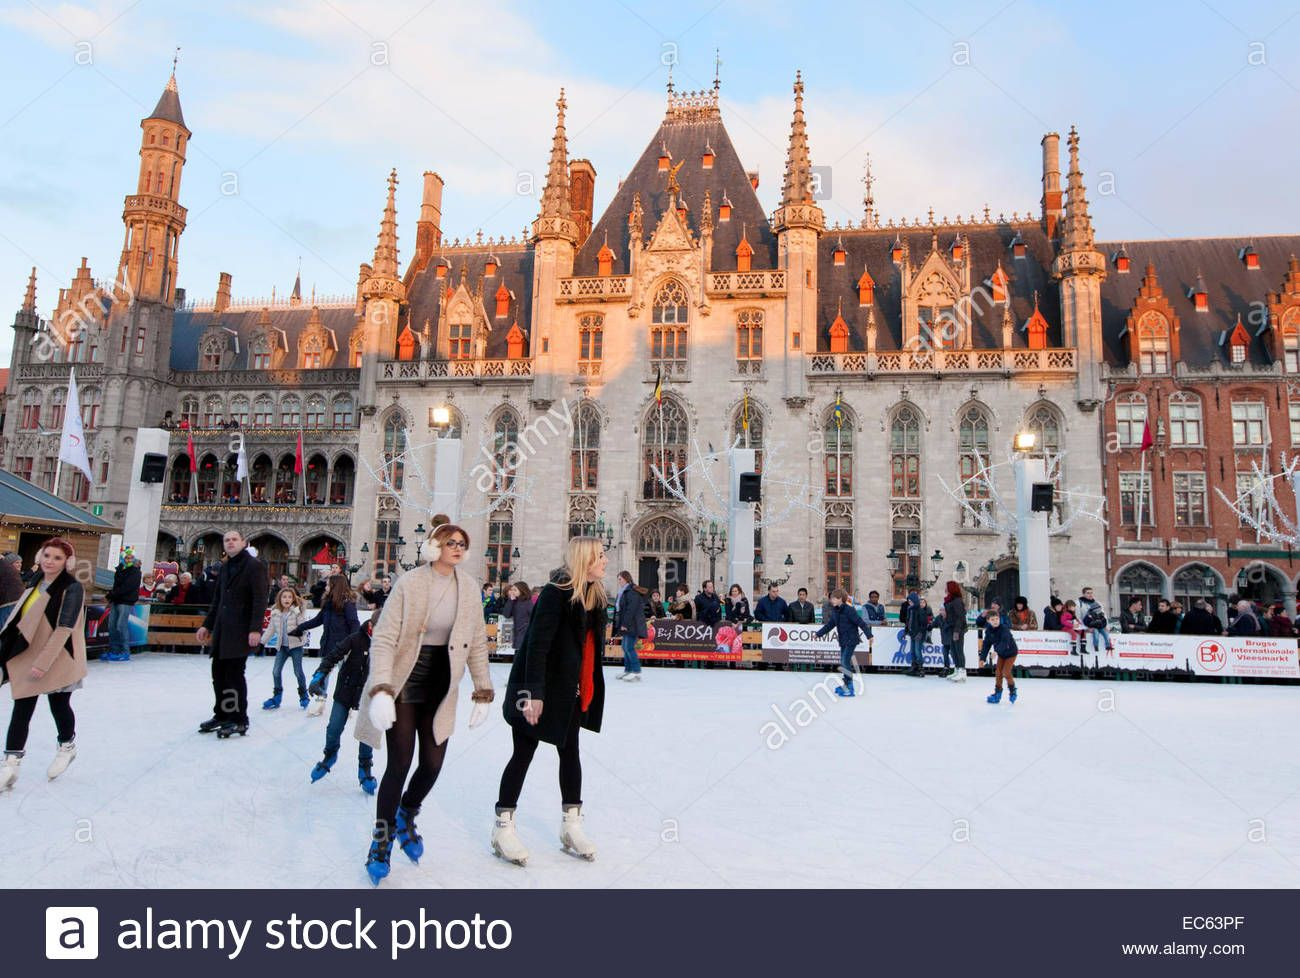 Bruges Christmas Market Images.People Ice Skating In The Market Square Markt Square In